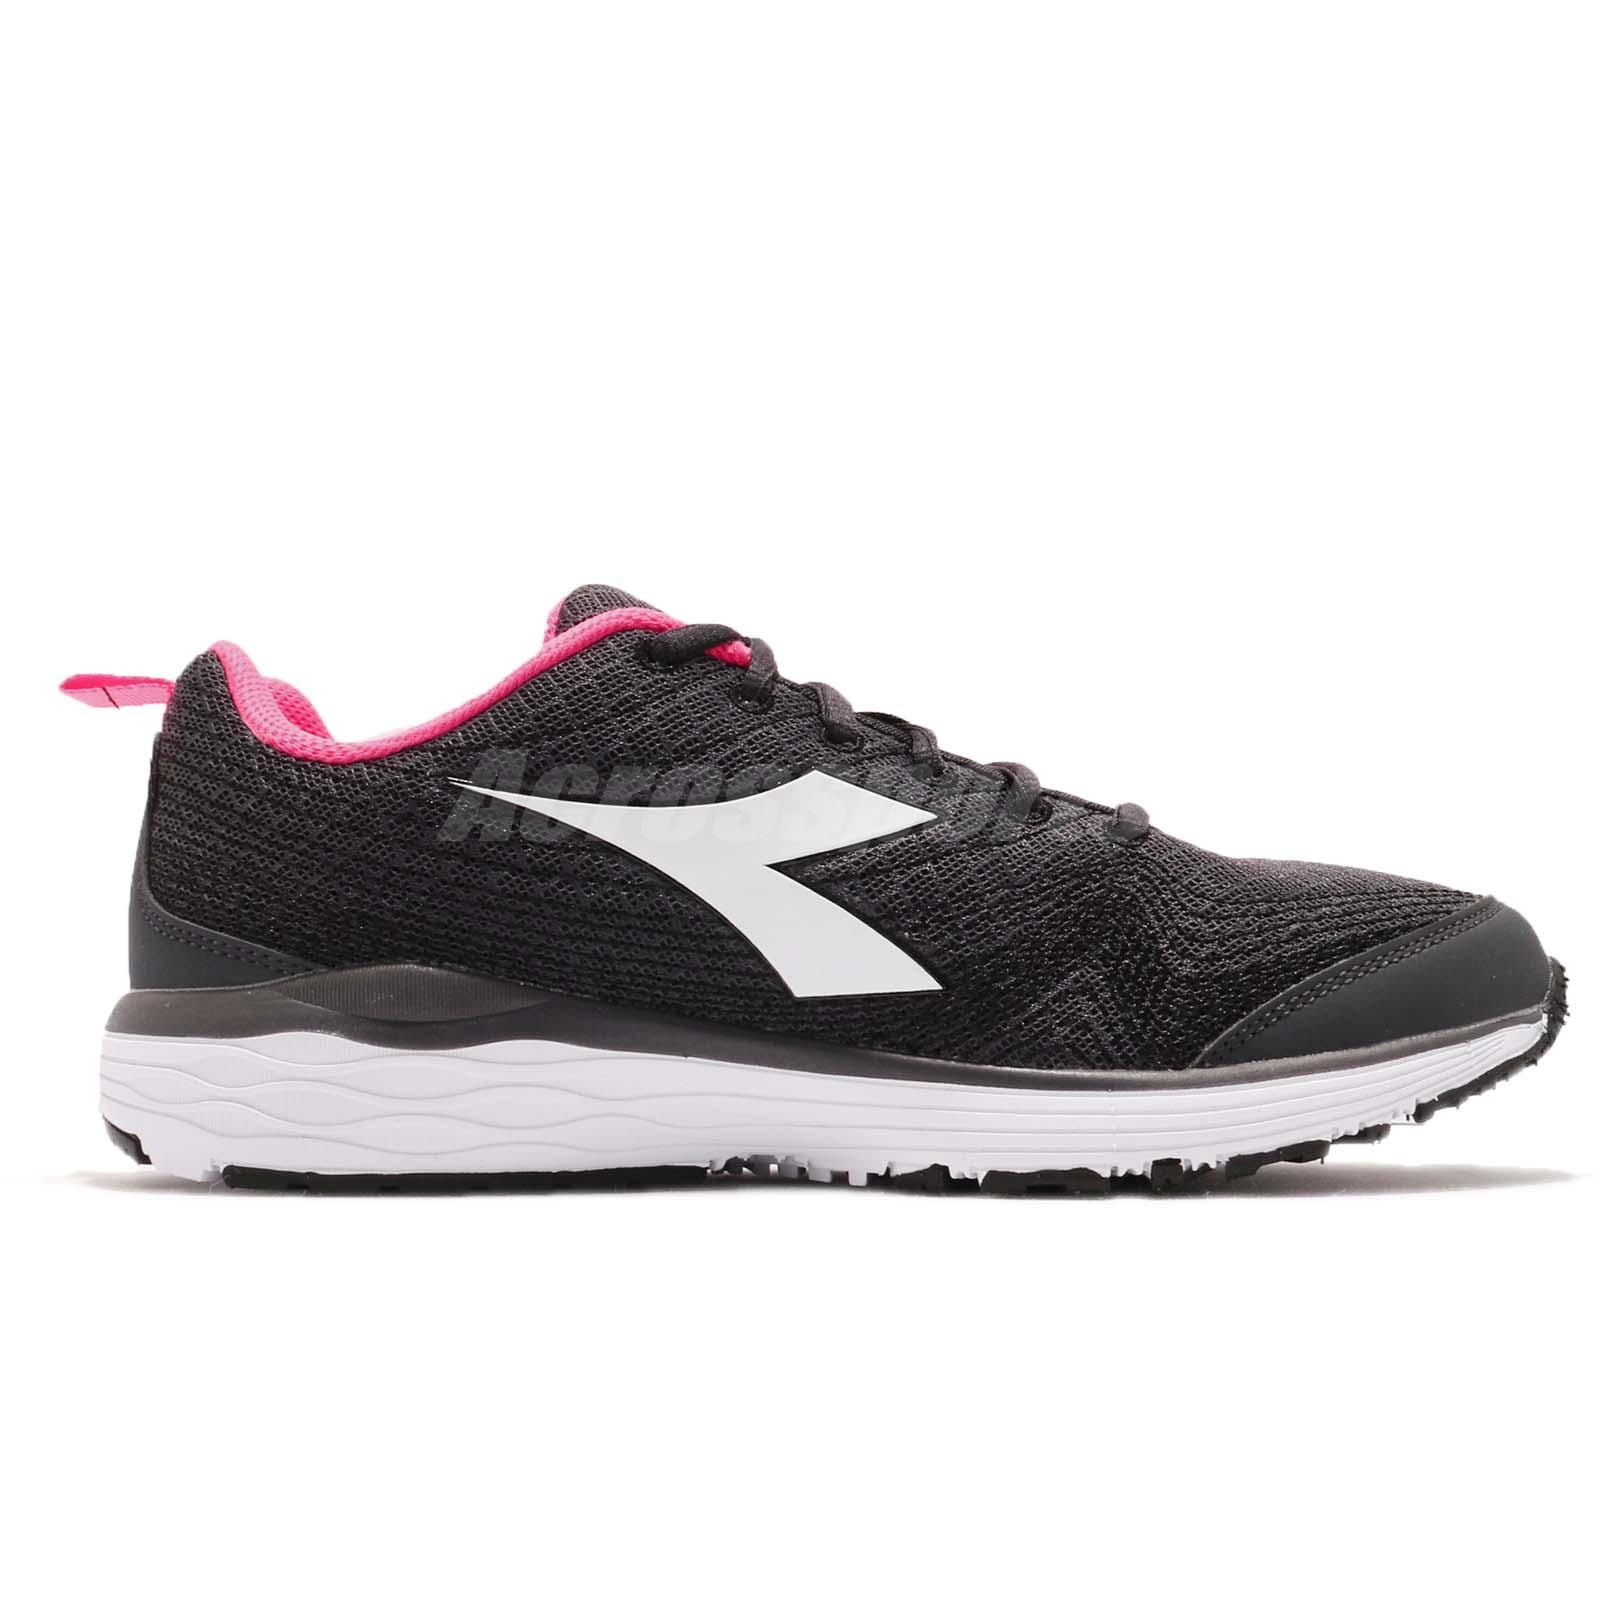 d08caf311c Details about Diadora Flamingo W Black White Pink Women Running Shoes  Sneakers DA172868-C0641